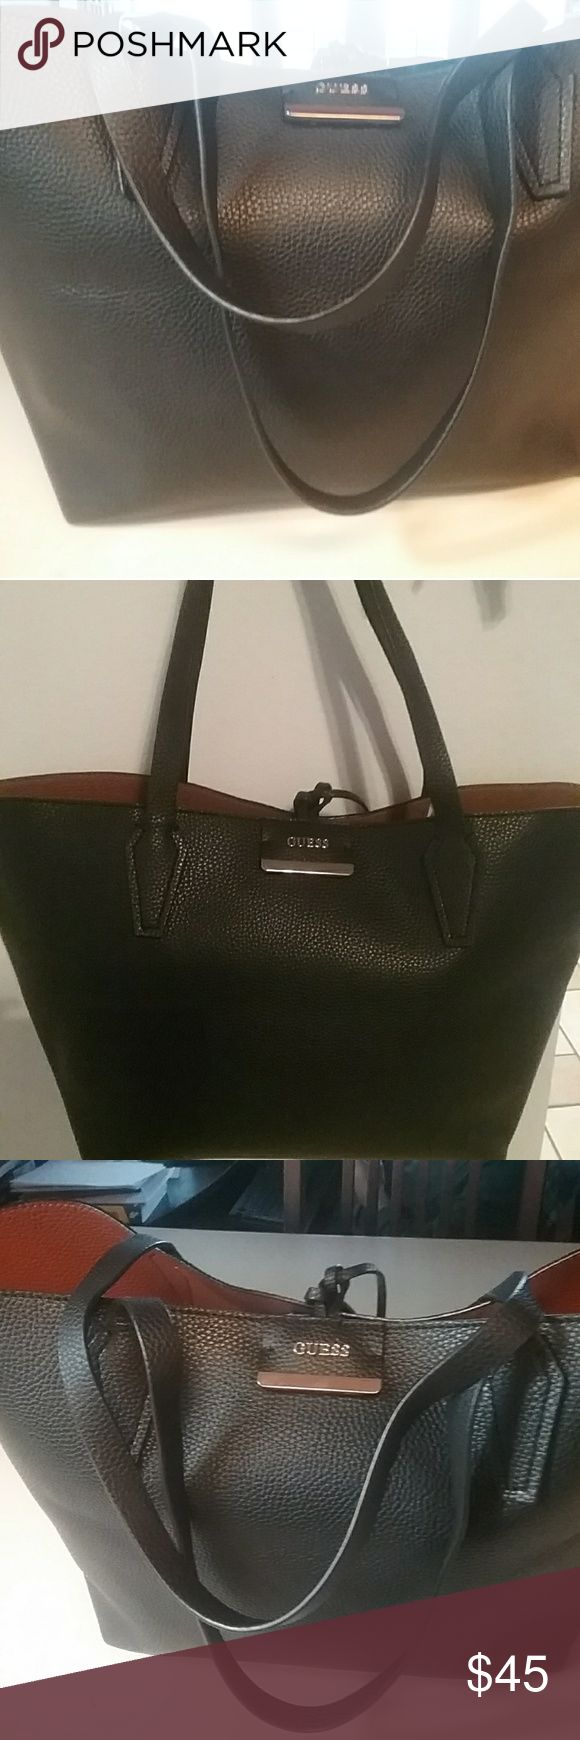 Tote Guess handbag All leather Guess original really beautiful Guess Bags Totes